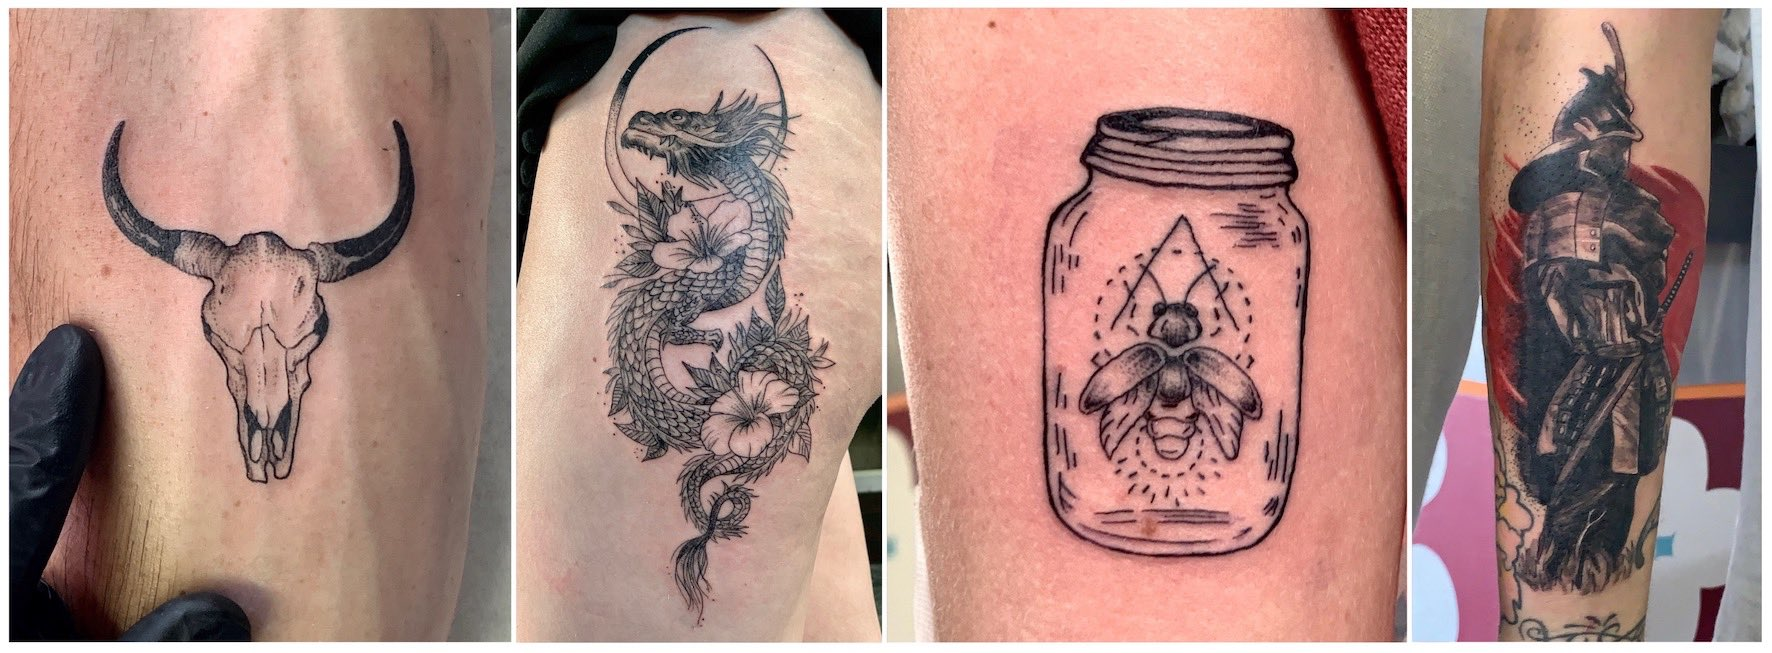 A selection of black work tattoos done by Nathan Ferreira